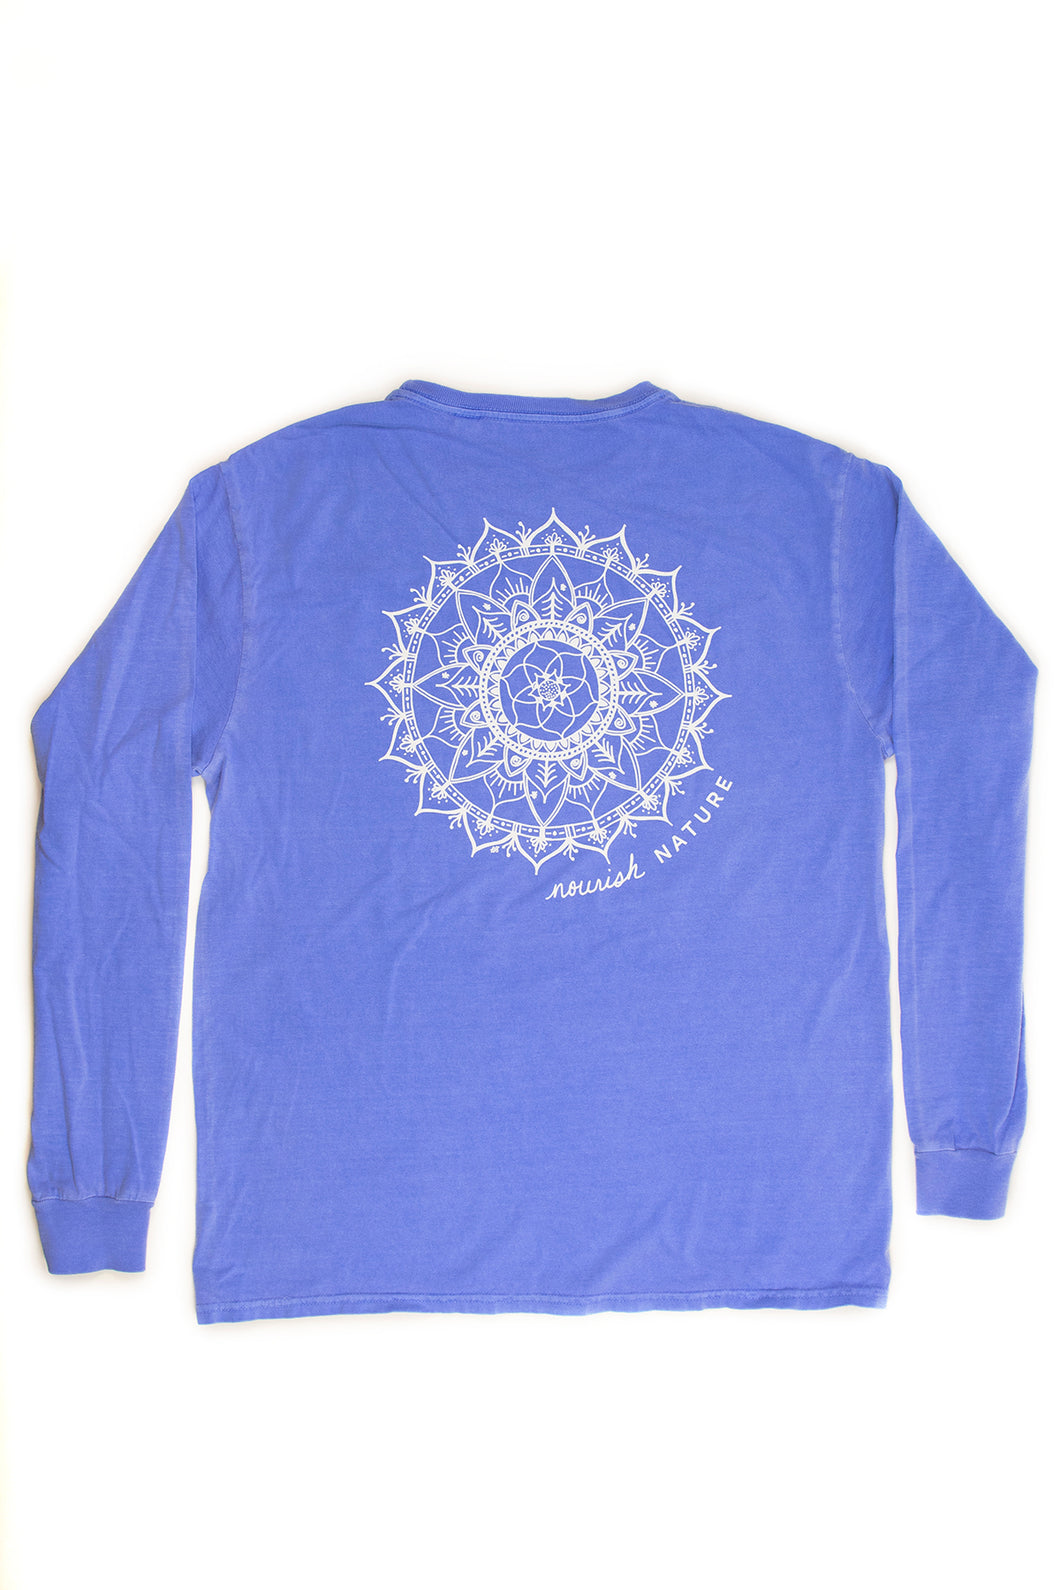 Nourish Nature Long-Sleeved Crew, Peri (provides 14 meals)